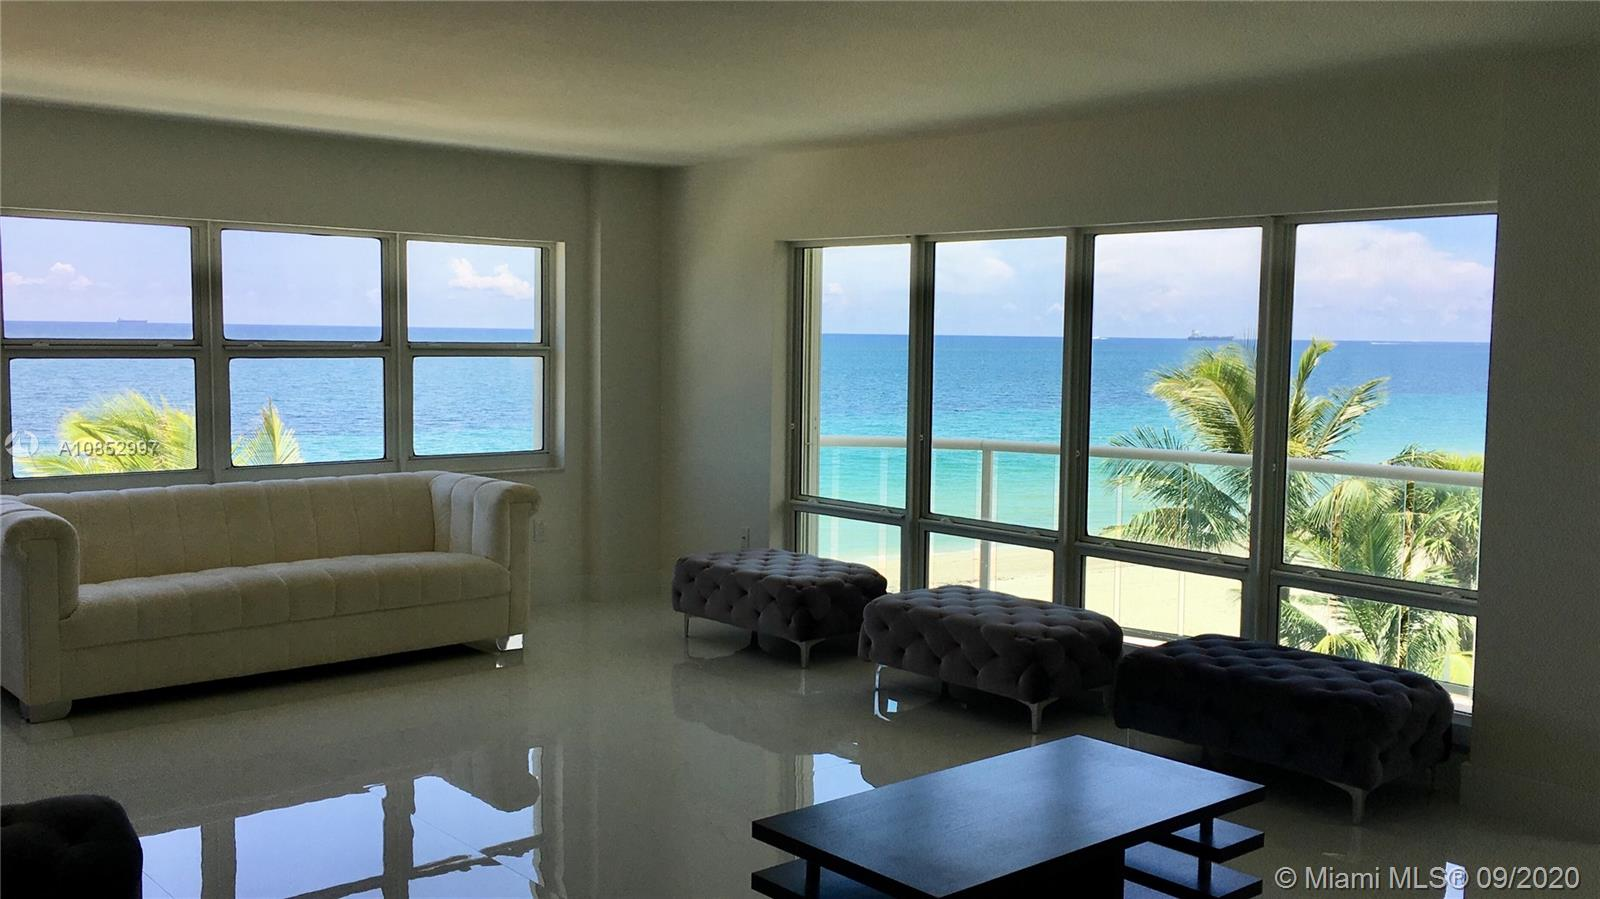 2115 sq ft - JUST REMODEL !!! BRAND NEW : PORCELAIN 32 x 32 CARRARA TILE , NEW APPLIANCES, NEW KTCHEN CABINETS, NEW BATHROOMS... ALL BRAND NEW ....... AMAZING OCEAN VIEW !!Corner unit !!! Front Ocean stack.